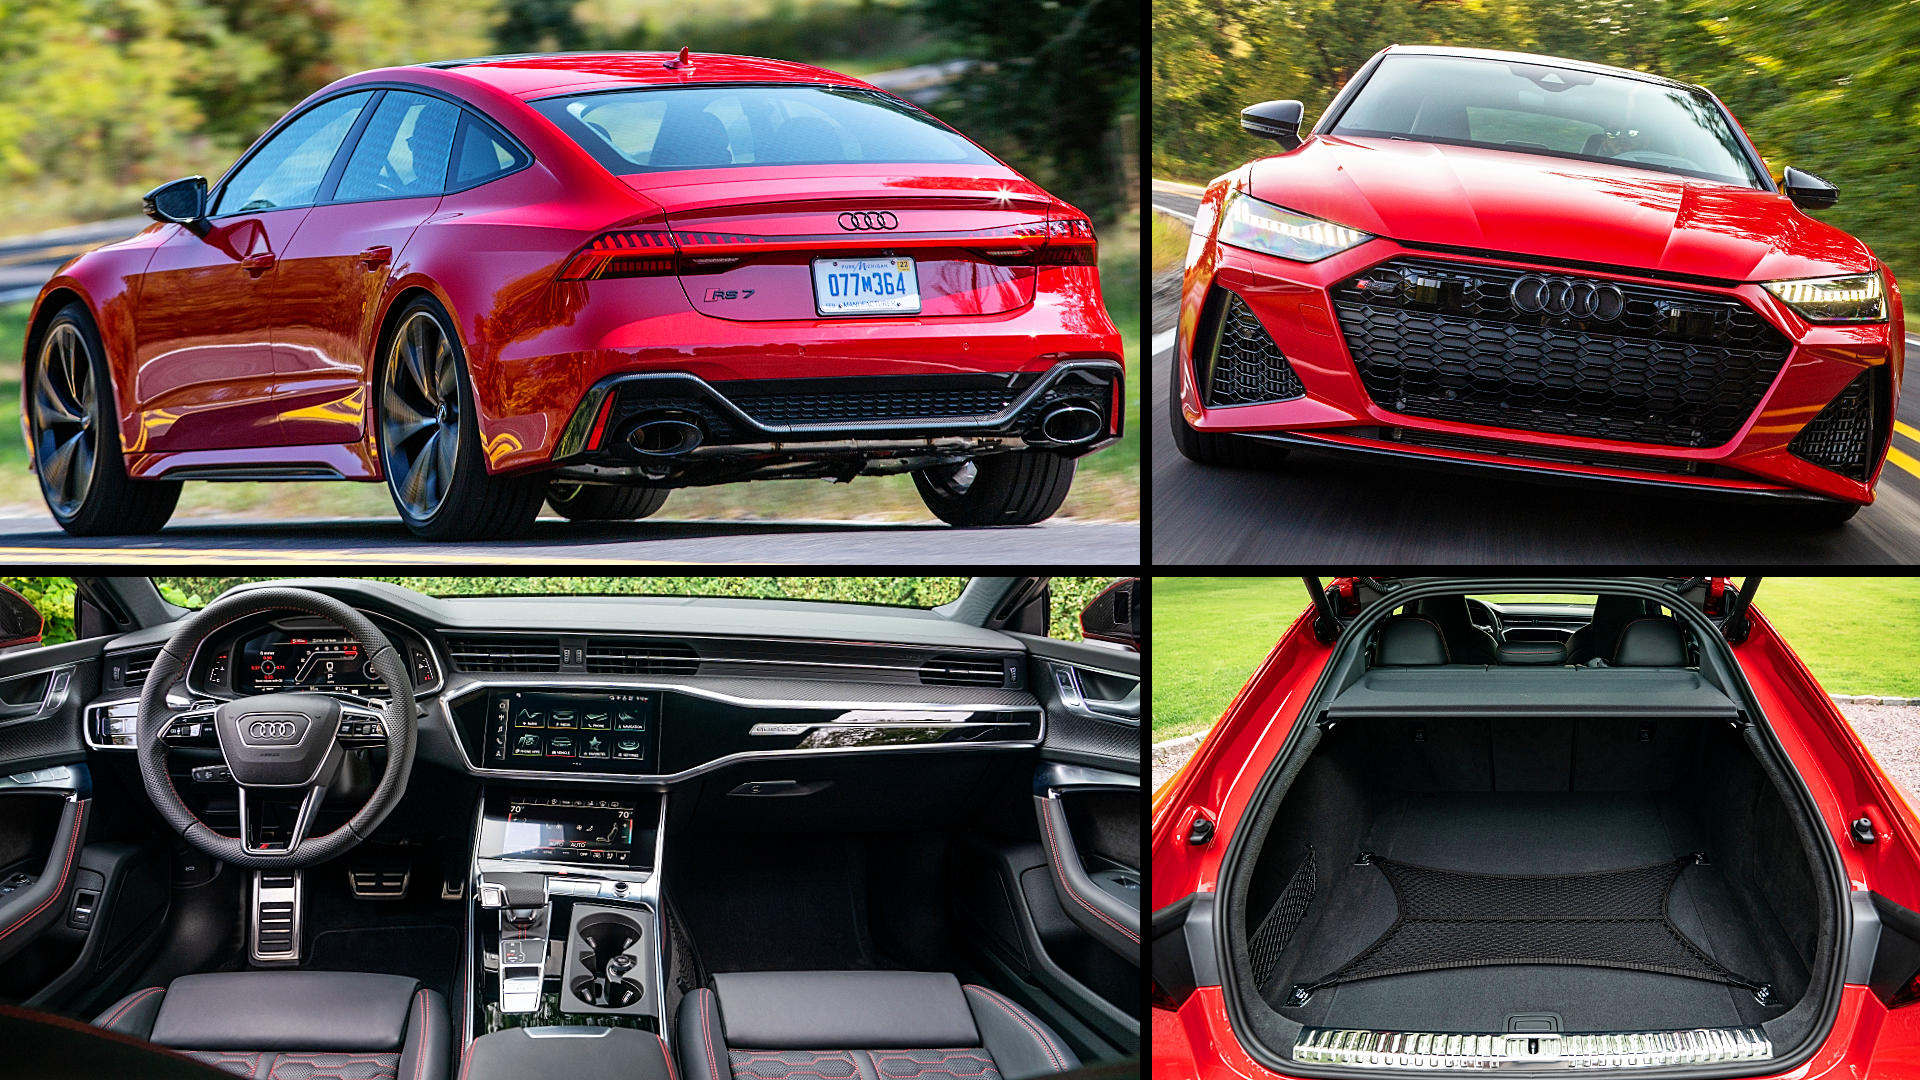 2021 Audi RS7 Sportback Red Pictures Images